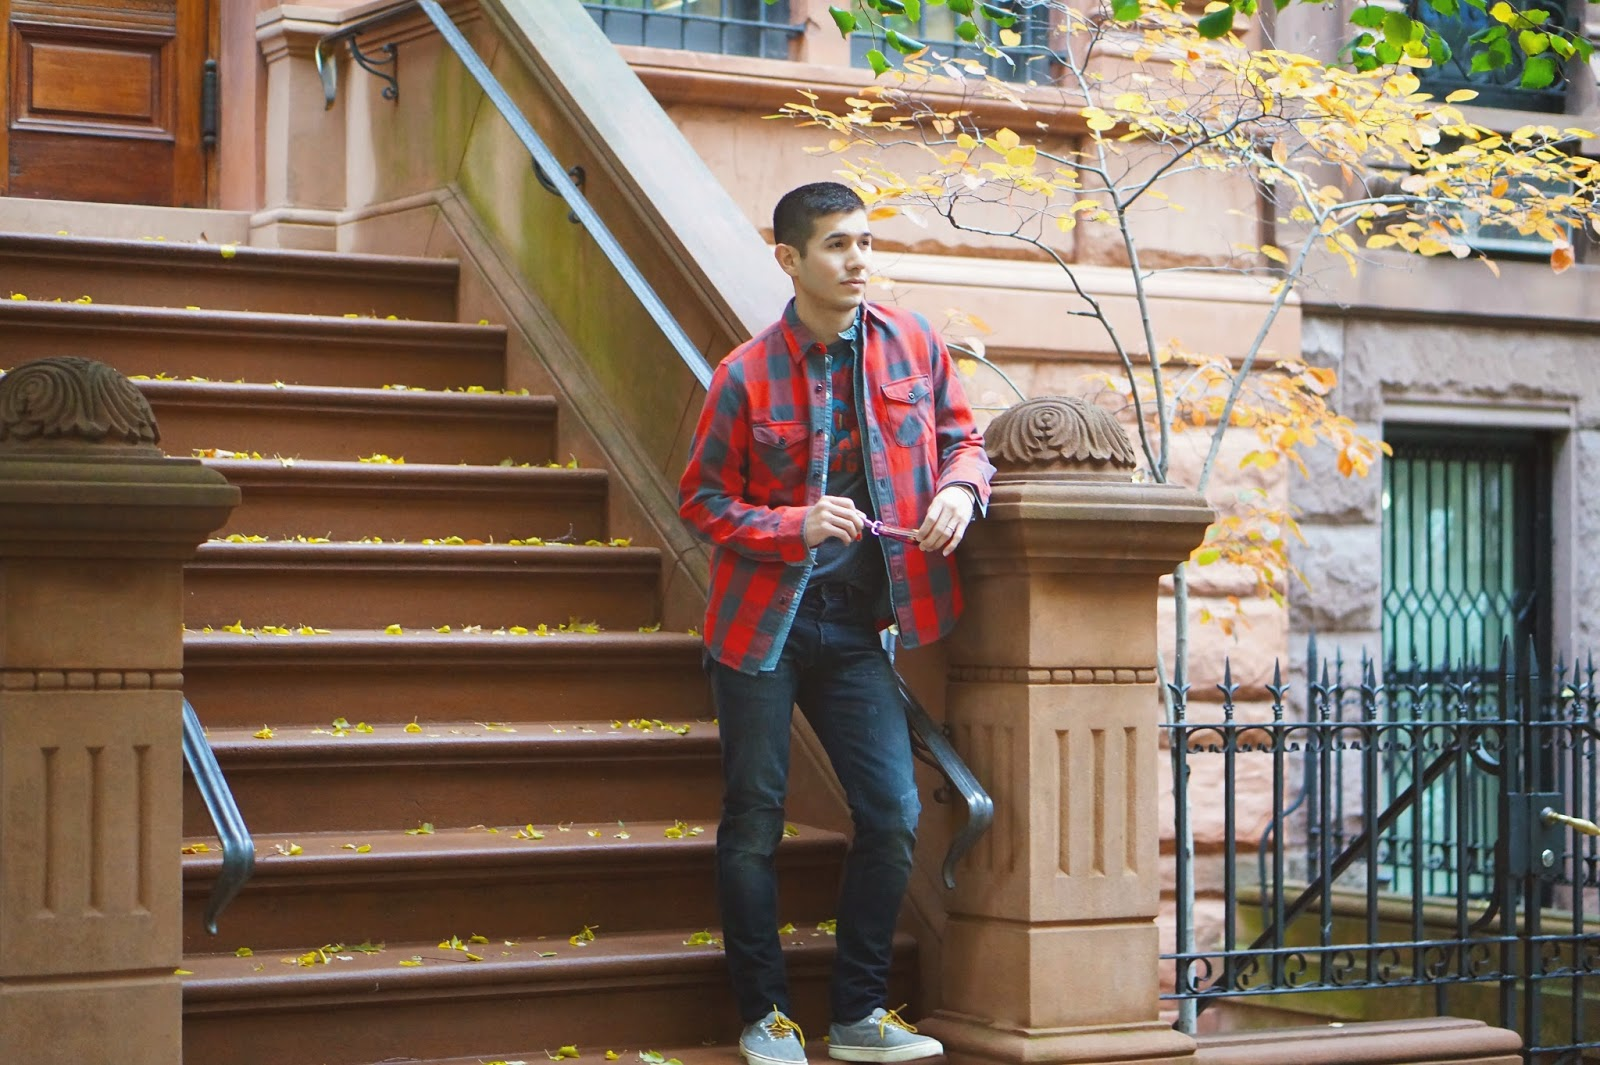 963ca8f9 Wearing: J. Crew Wallace and Barnes Buffalo Plaid Flannel   J. Crew  Selvedge Japanese Denim Workshirt   American Eagle Outfitters Graphic Tee    3x1 M5 ...